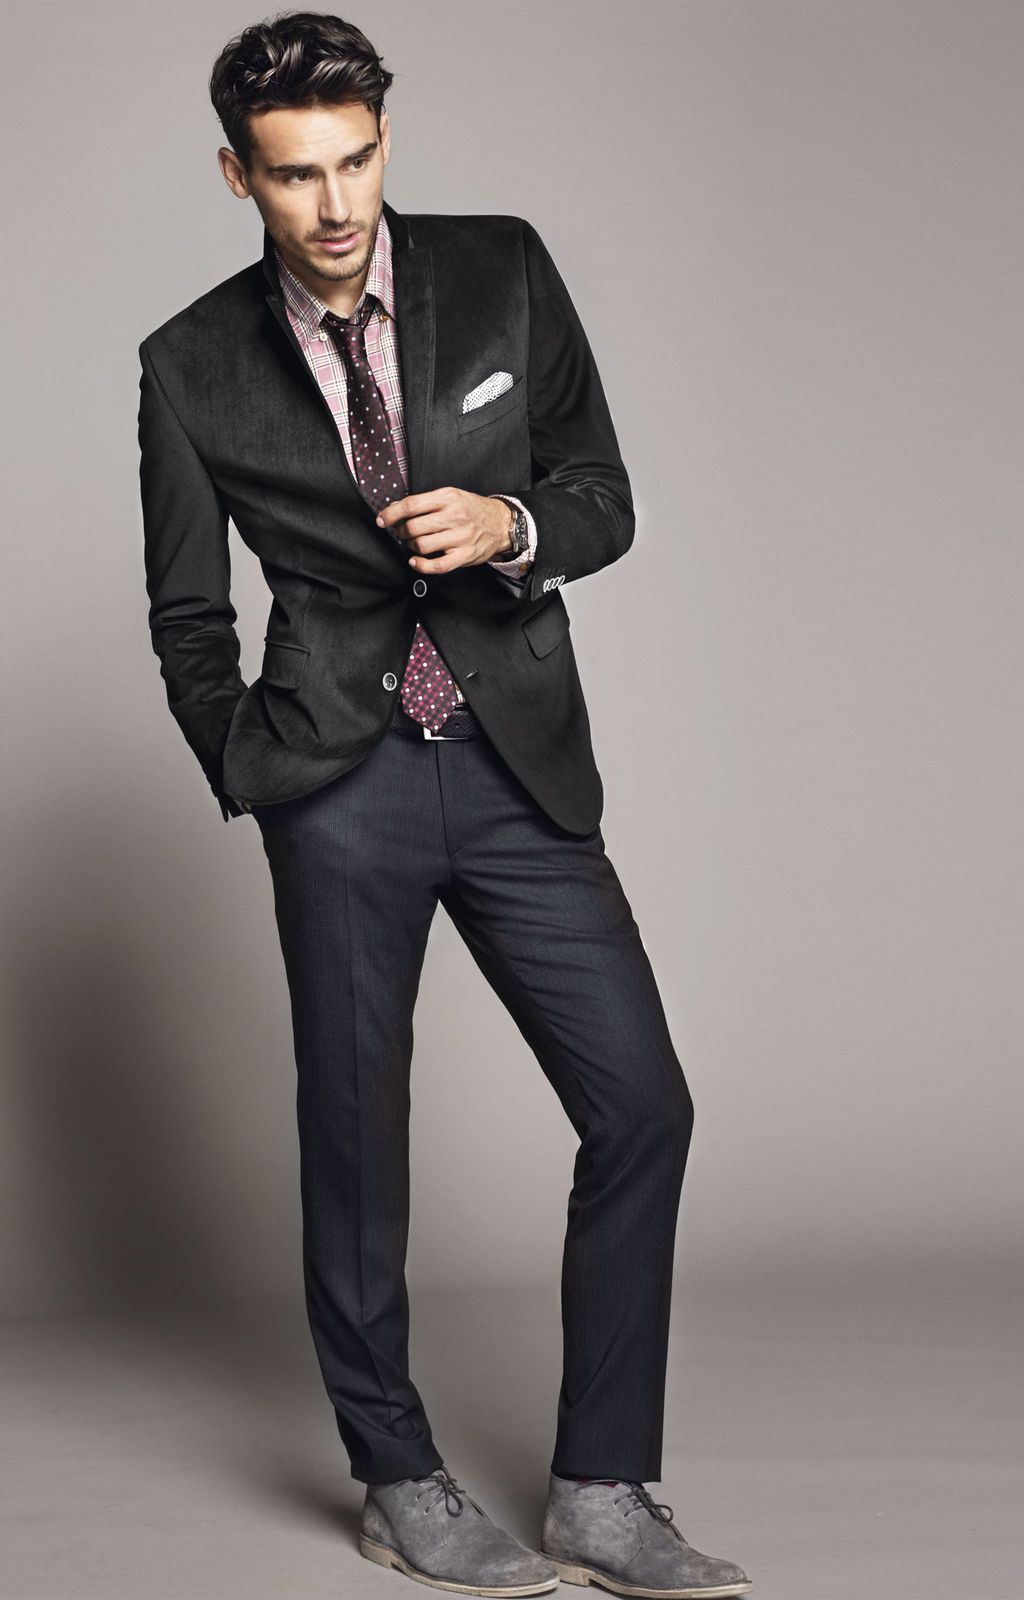 Black t shirt with suit - Look The Best You Possibly Can In A Black Suit And A Pink Tartan Oxford Shirt